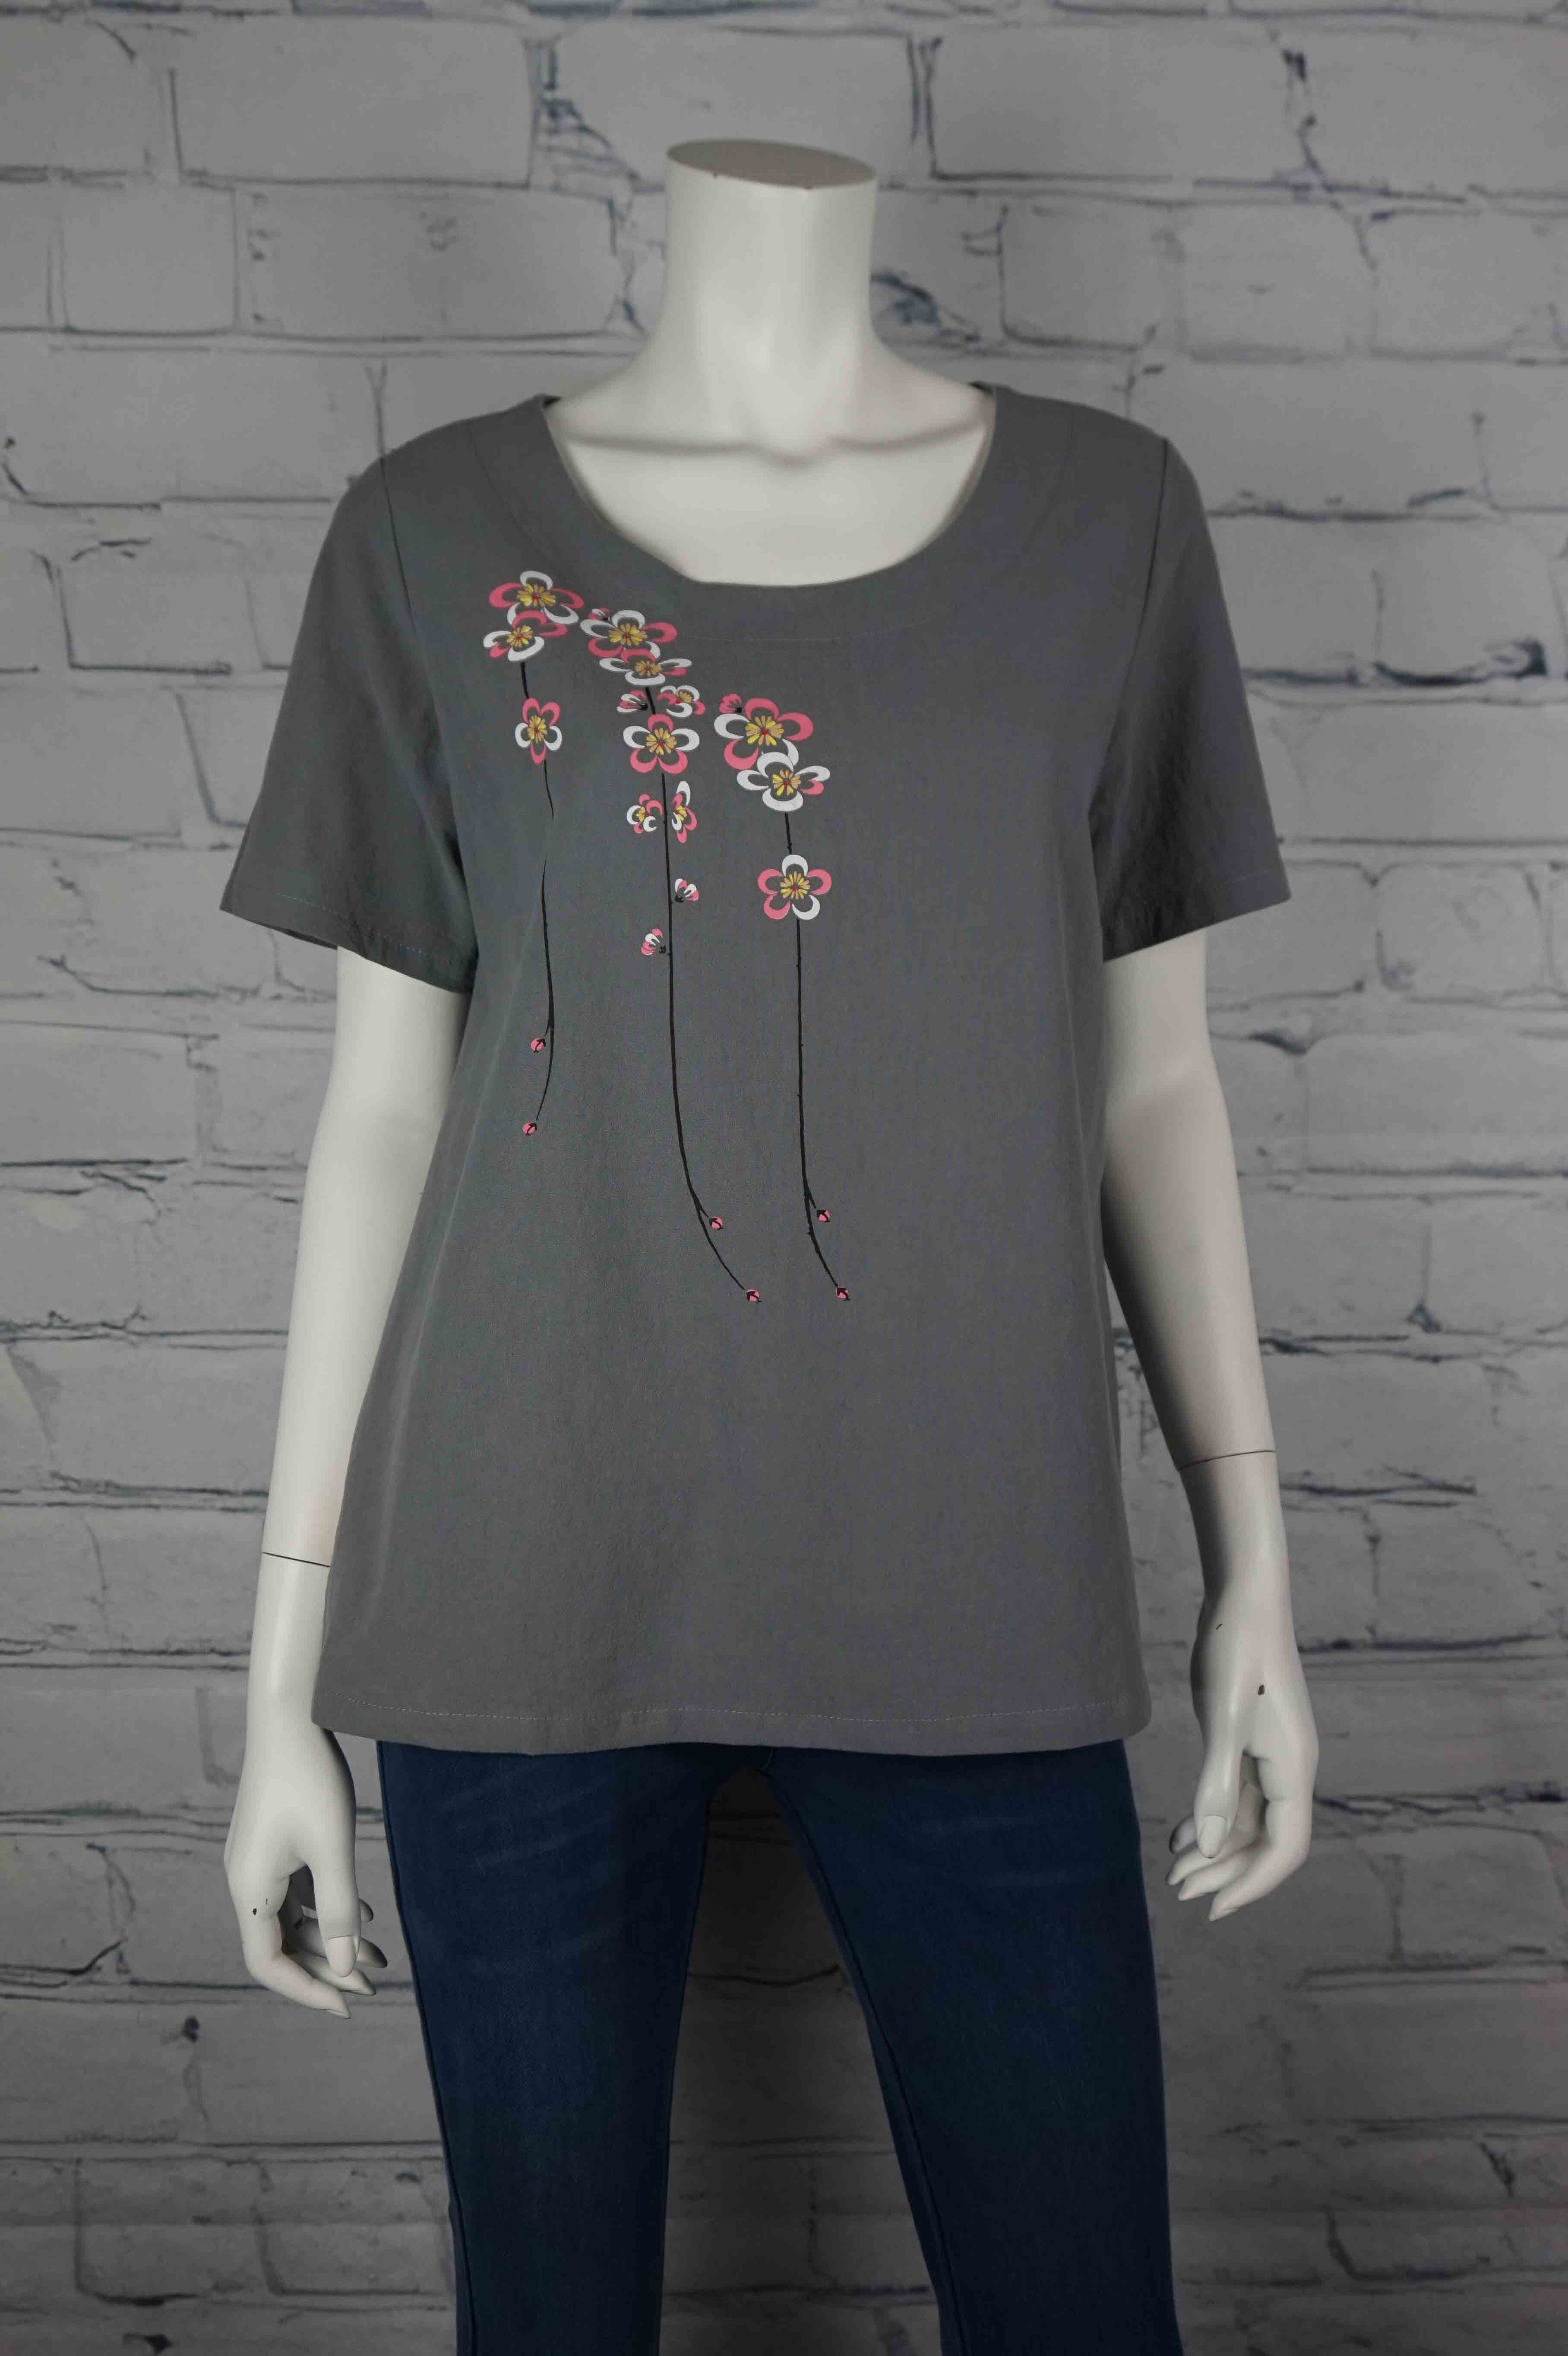 Portobello Road Cotton Top-Gry/Flower